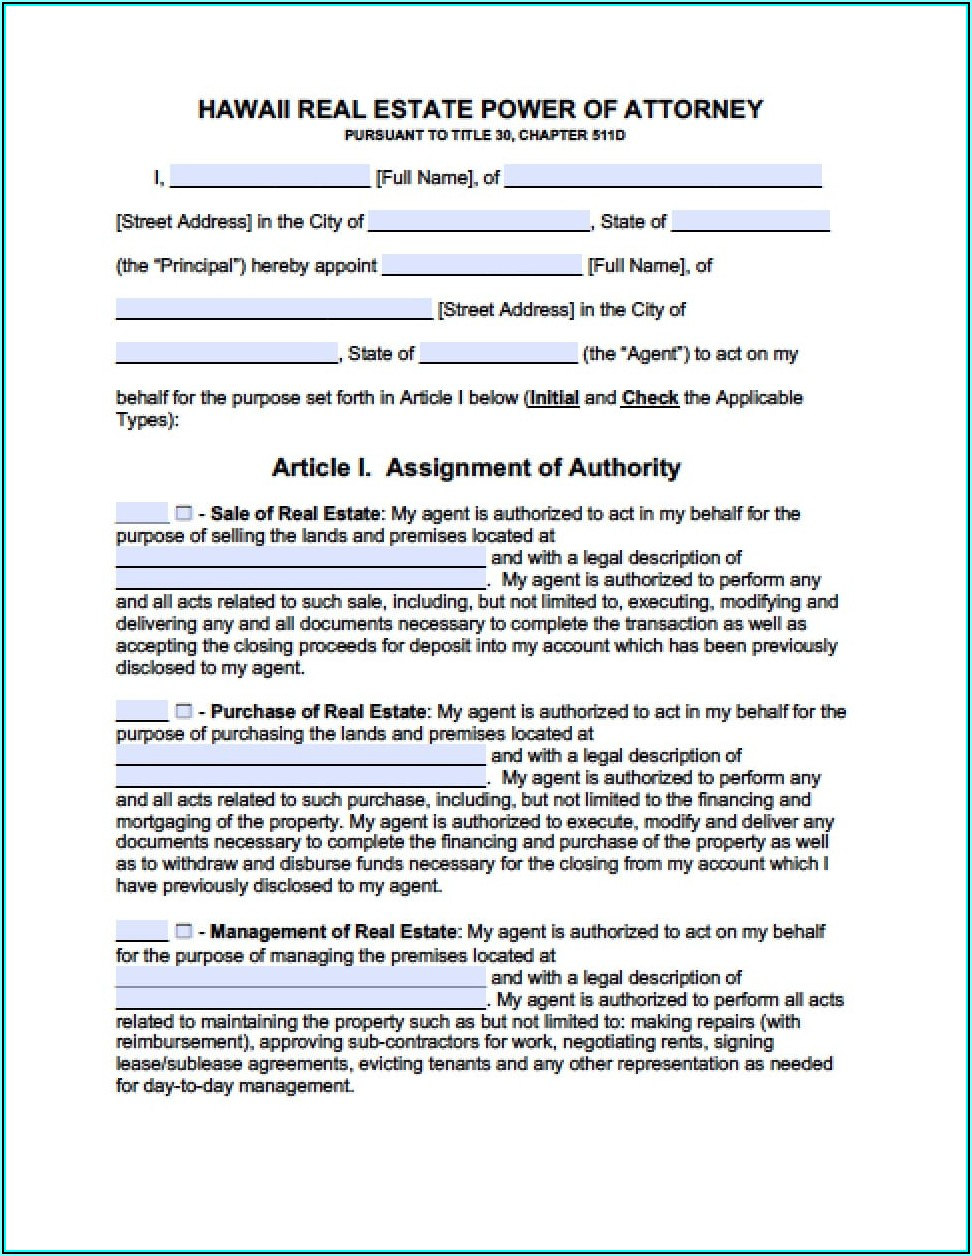 Sample Power Of Attorney Form Hawaii